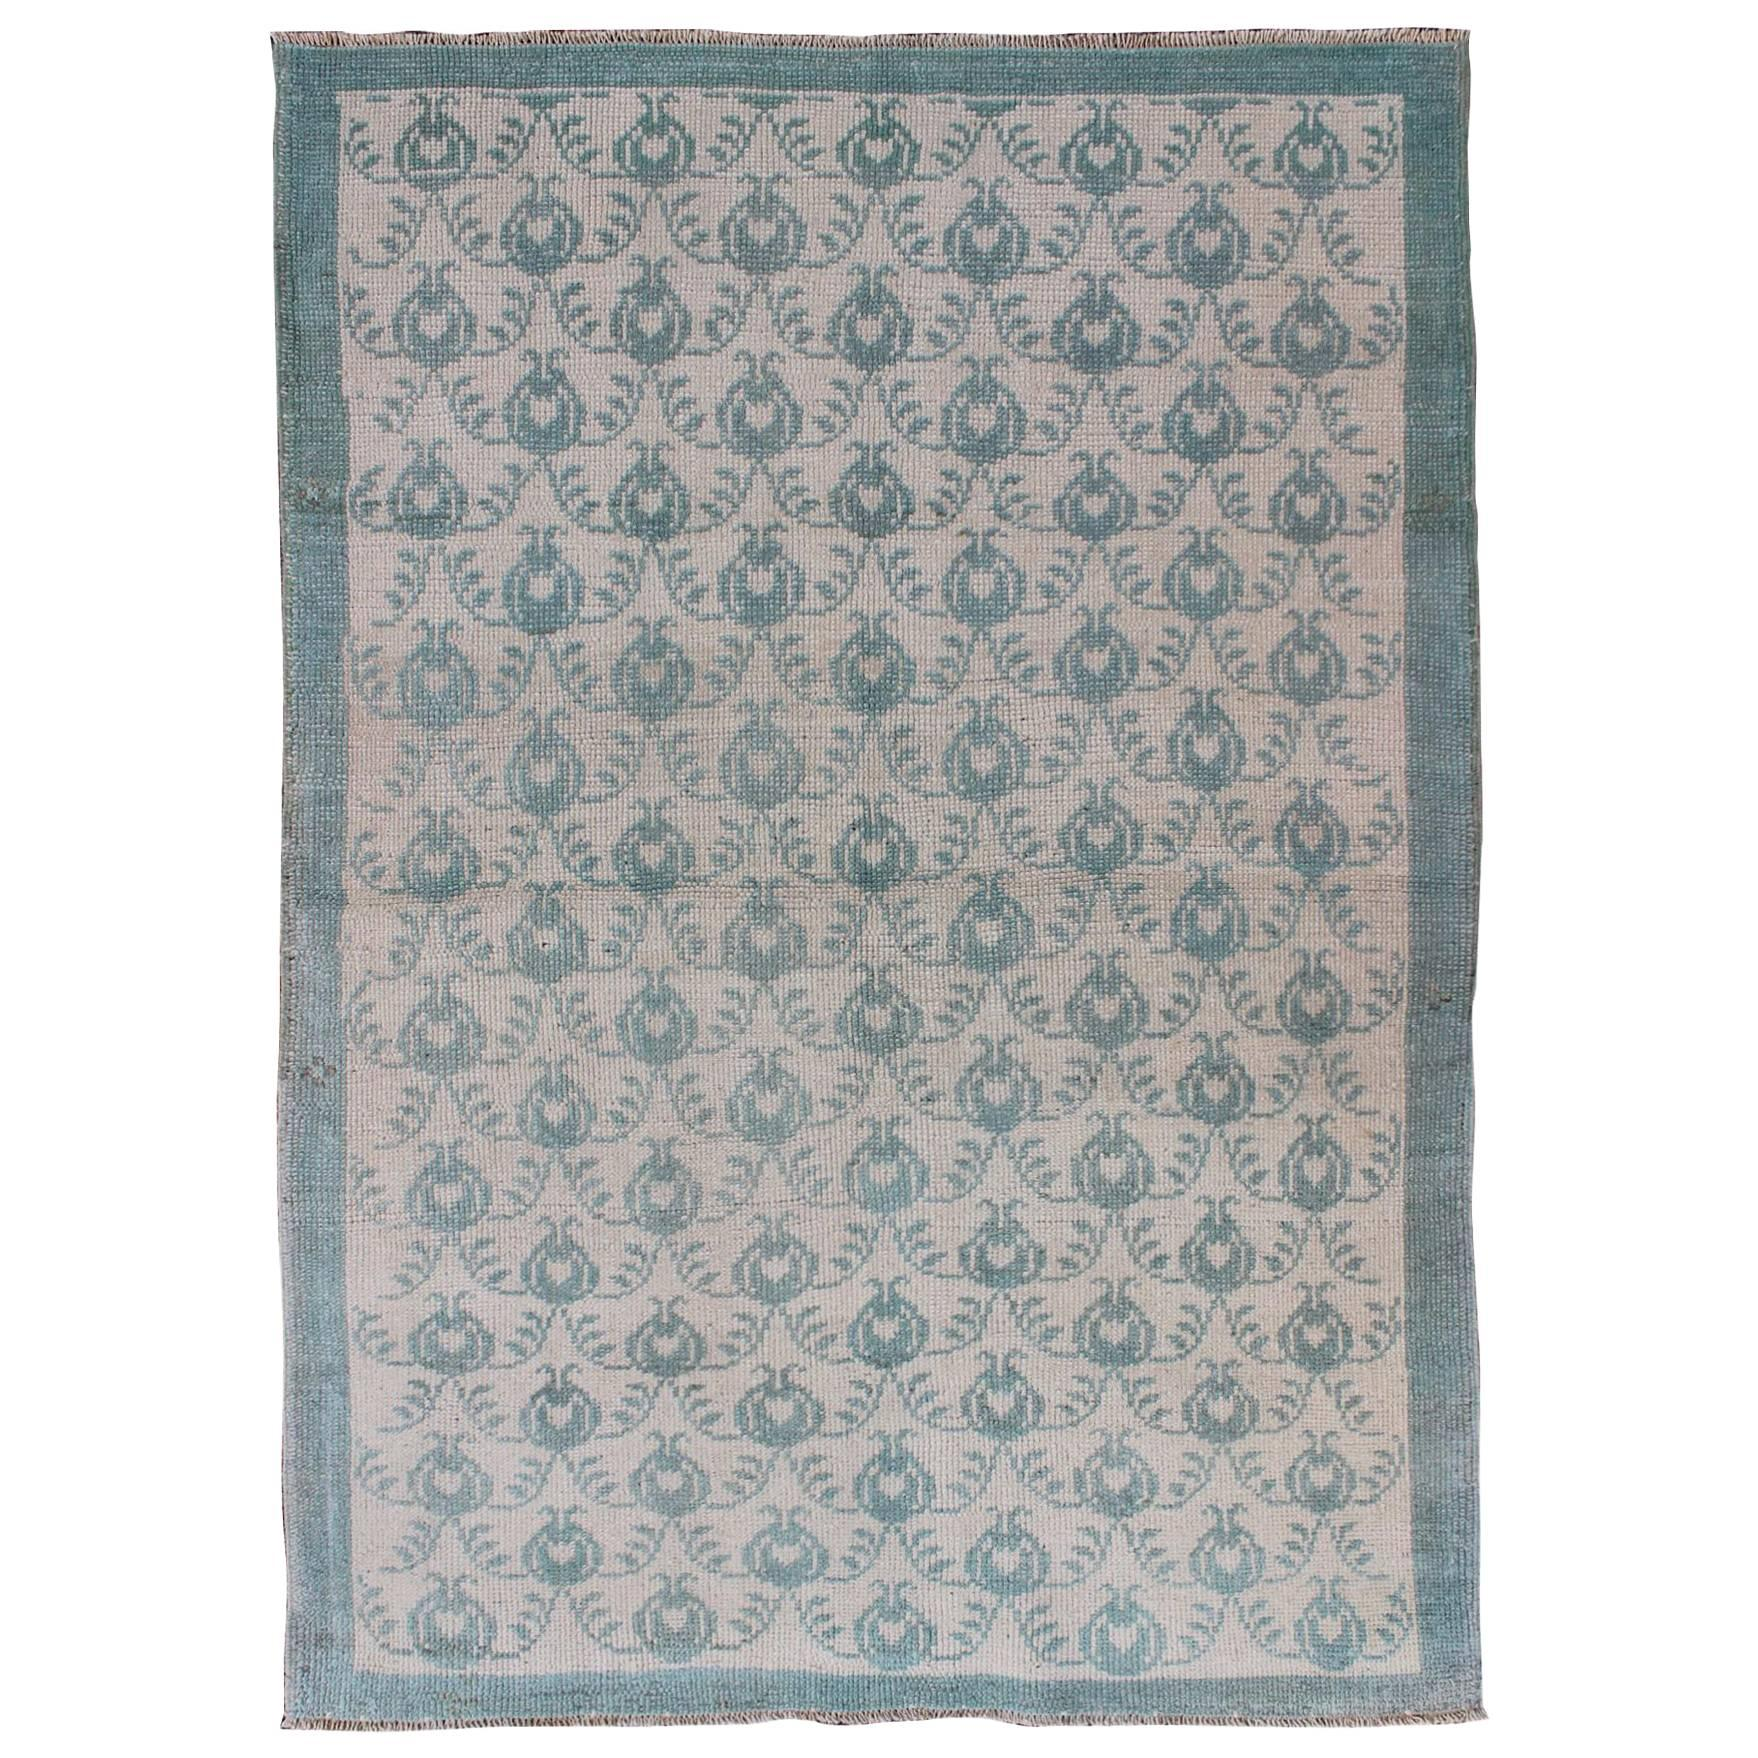 All Over Design Vintage Turkish Oushak Rug In Hunter Green And